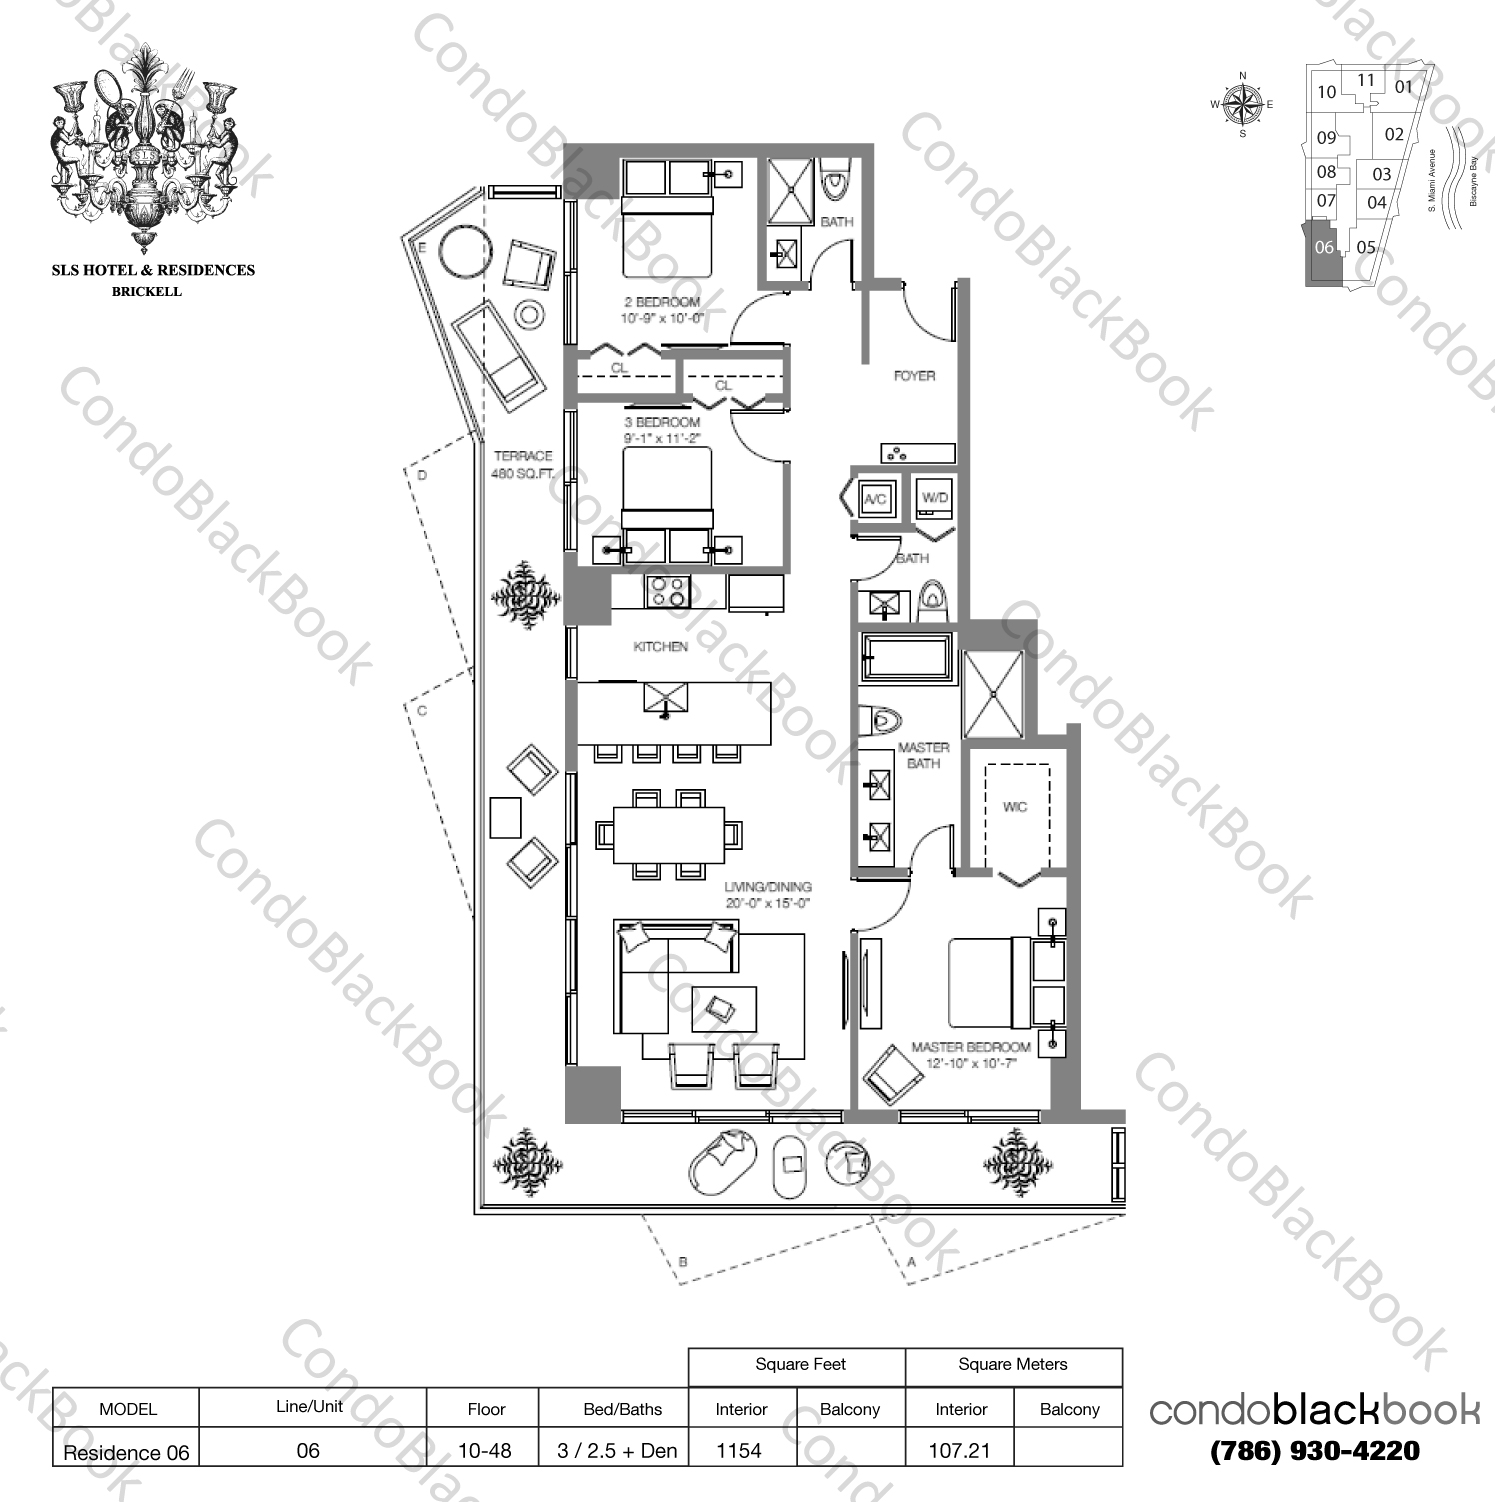 Floor plan for SLS Hotel & Residences Brickell Miami, model RESIDENCE 06, line 06, 3/2.5 bedrooms, 1,826 sq ft